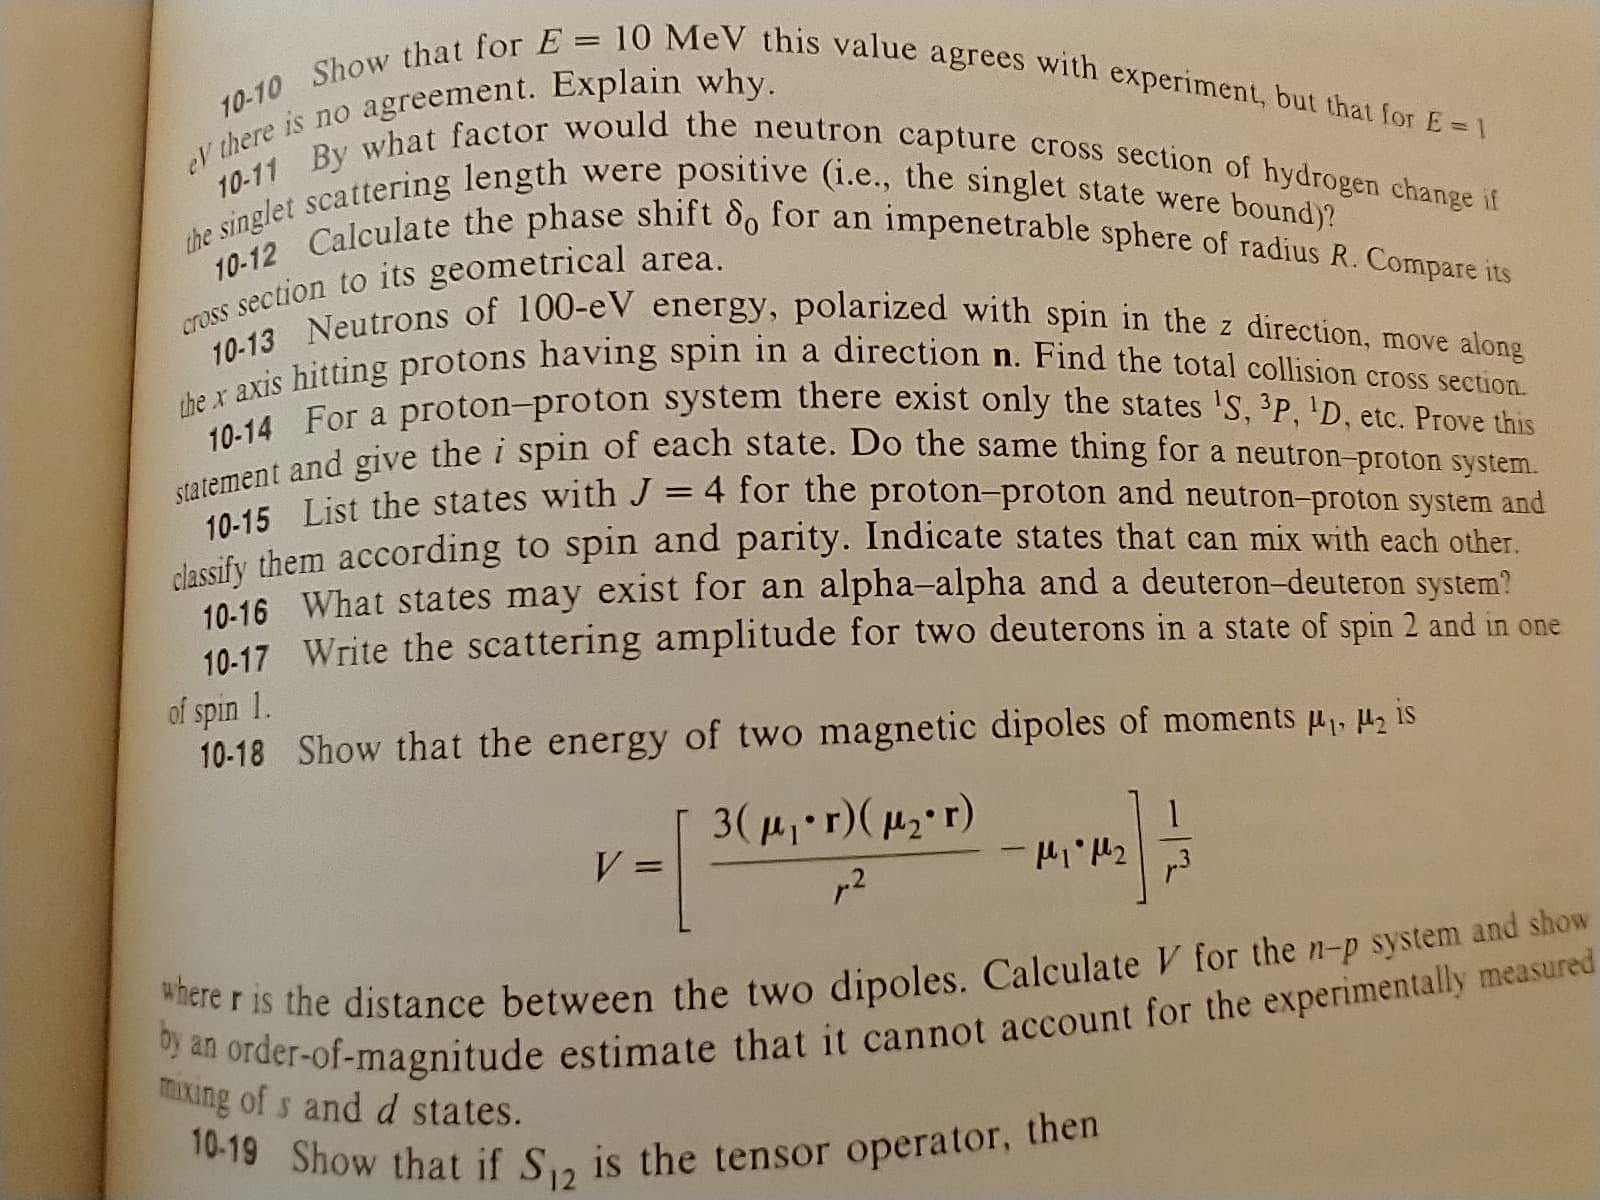 Image of question 10-16